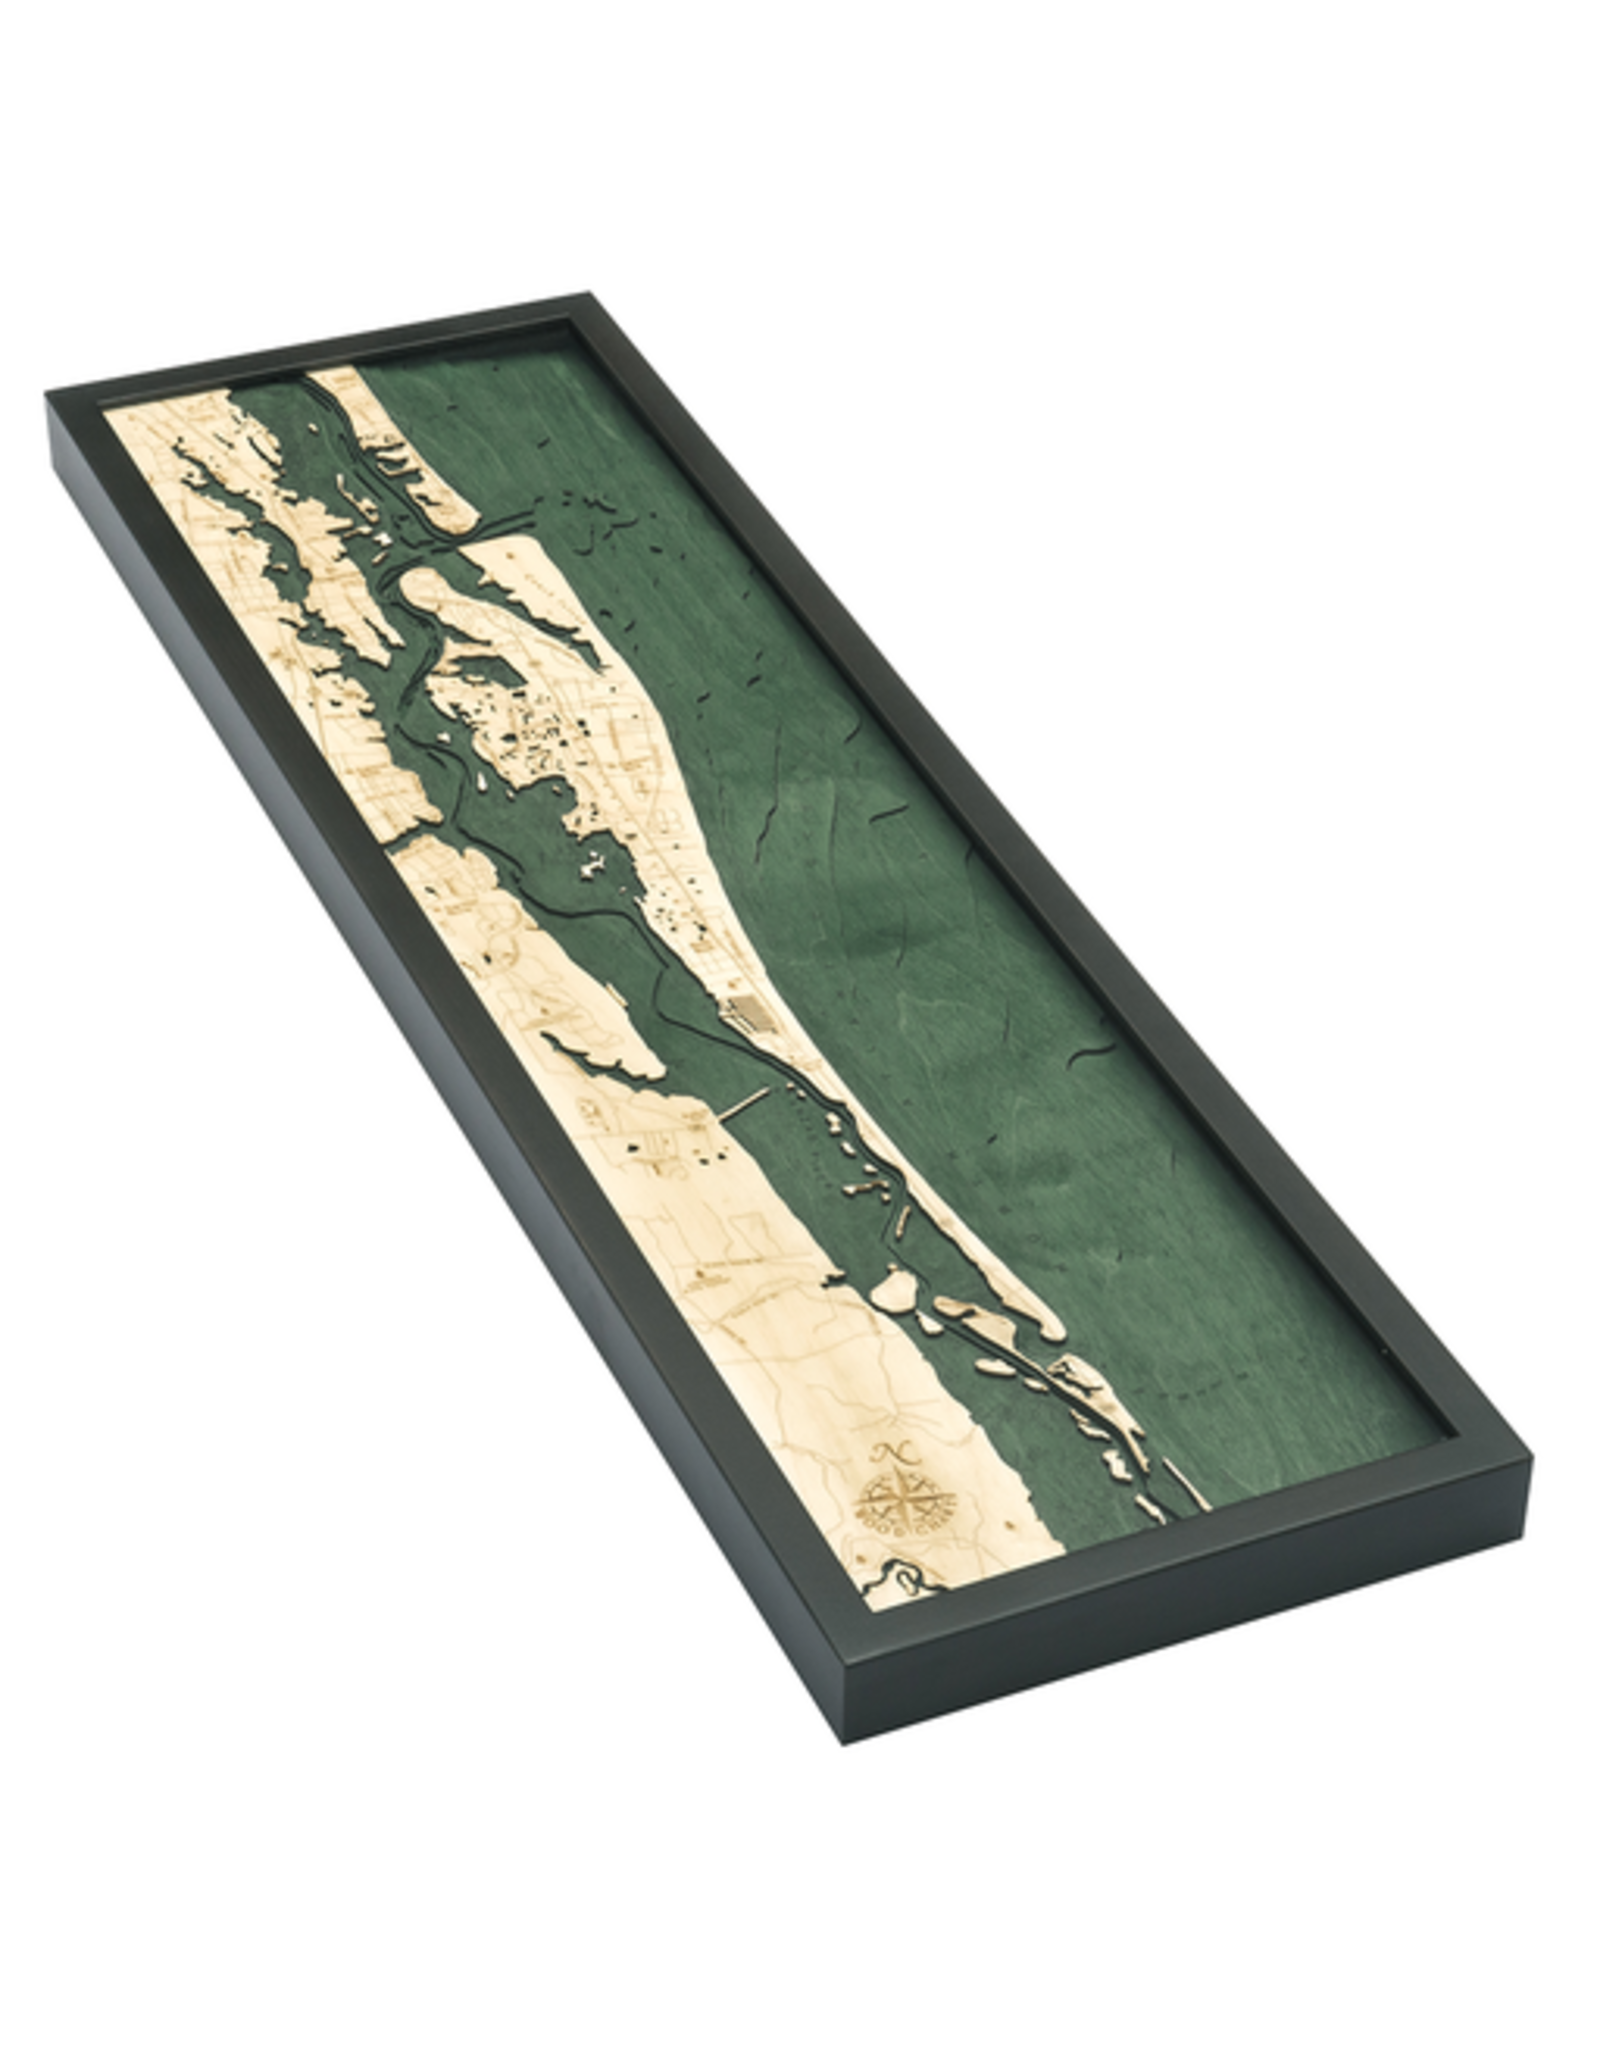 WoodCharts St. Augustine (Bathymetric 3-D Wood Carved Nautical Chart)